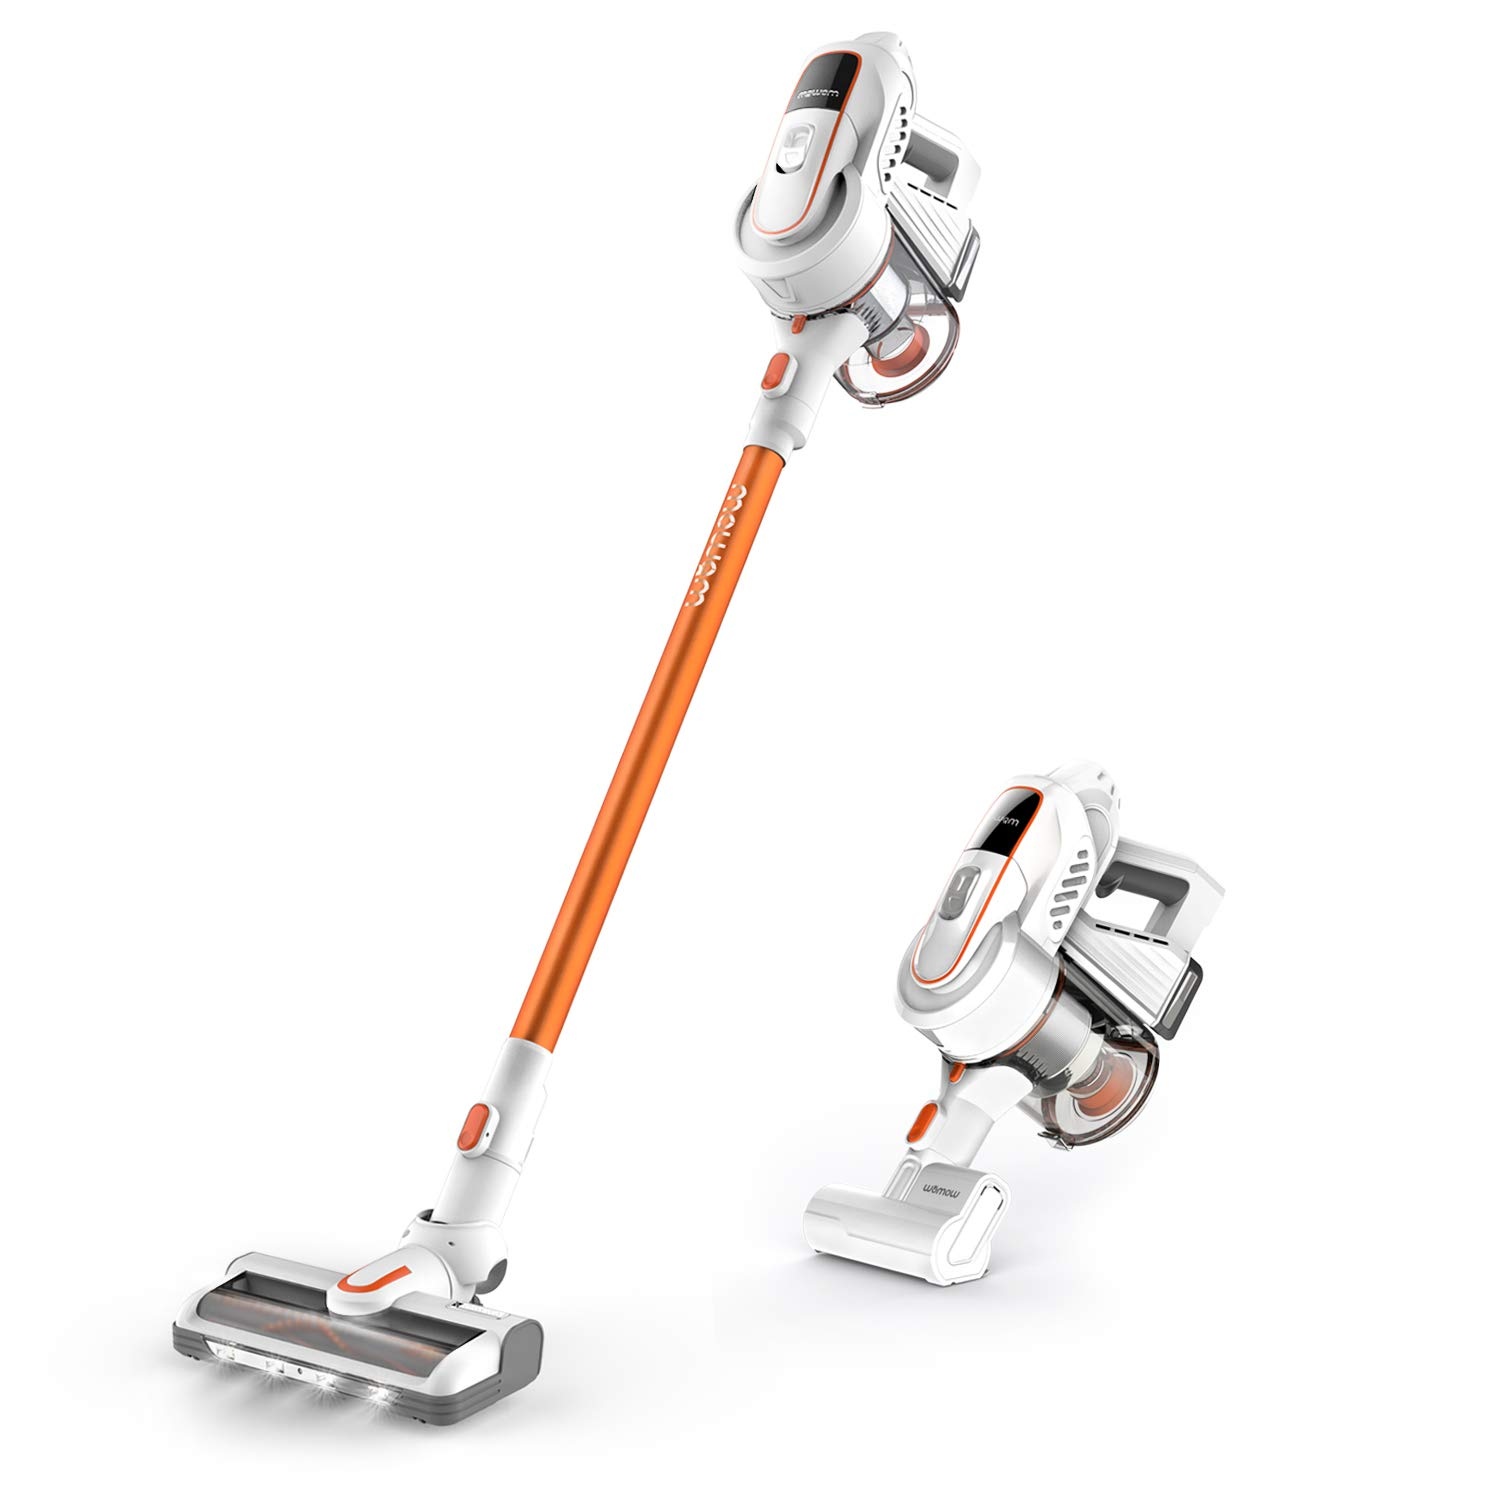 Cordless Vacuum Cleaner, Womow W9 Stick Vacuum Cleaner, 16000pa Powerful Suction, 300W Brushless Motor, Lightweight 2 in 1 Handheld Vacuum with HEPA Filter LED Power Brush for Pet Hair by Womow